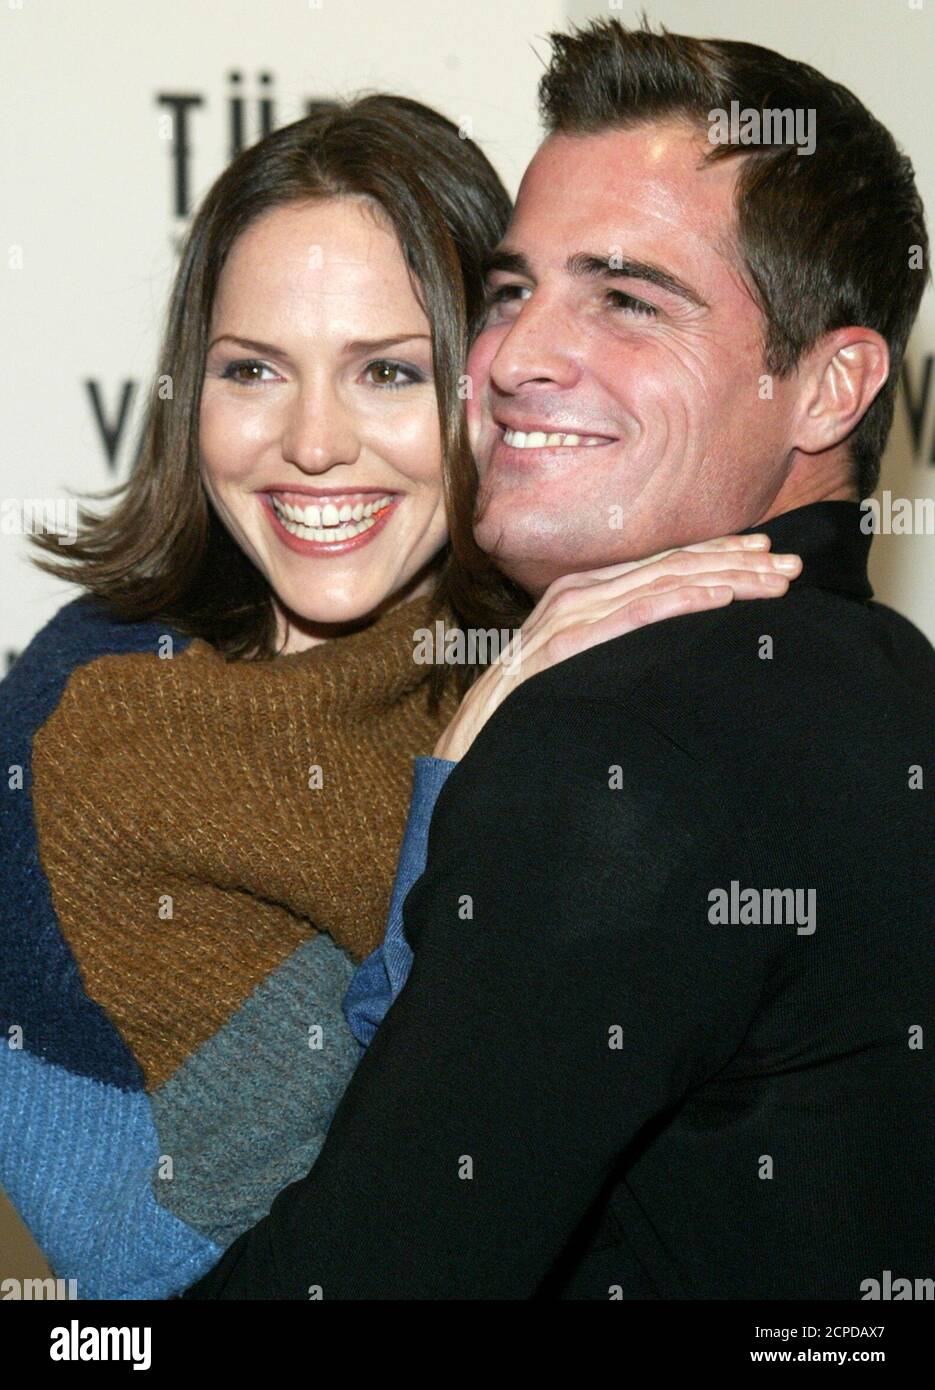 Csi Crime Scene Investigation Cast Members Jorja Fox L And George Eads Embrace Before A Party At The Light Nightclub In Las Vegas Nevada On Dec 14 2003 The Pair Were Fired